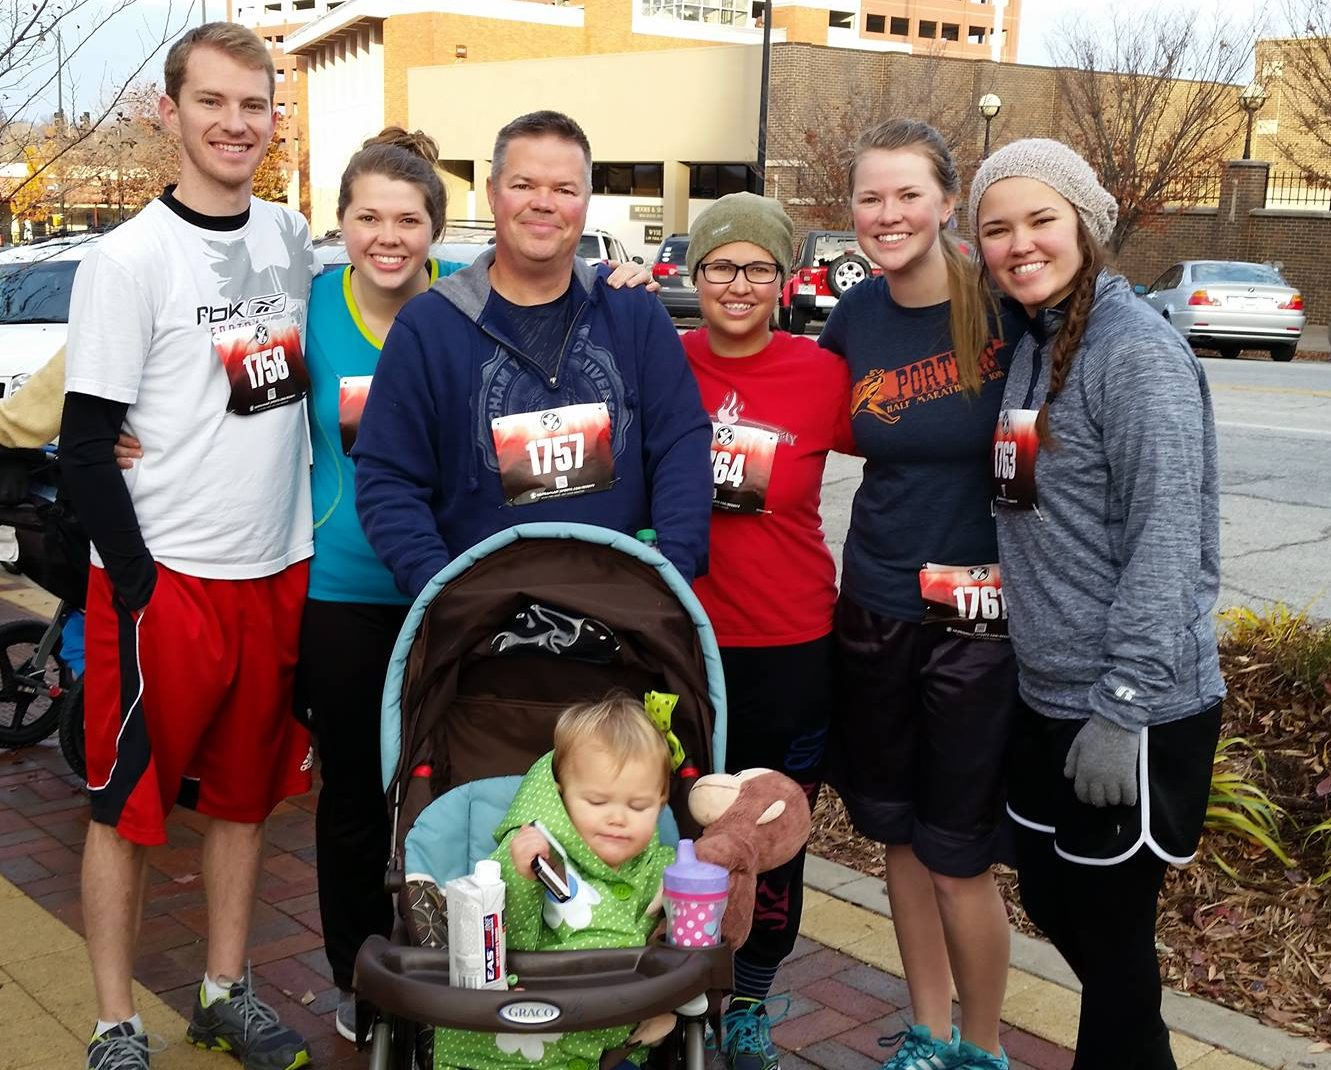 Family having fun at a local 5K race